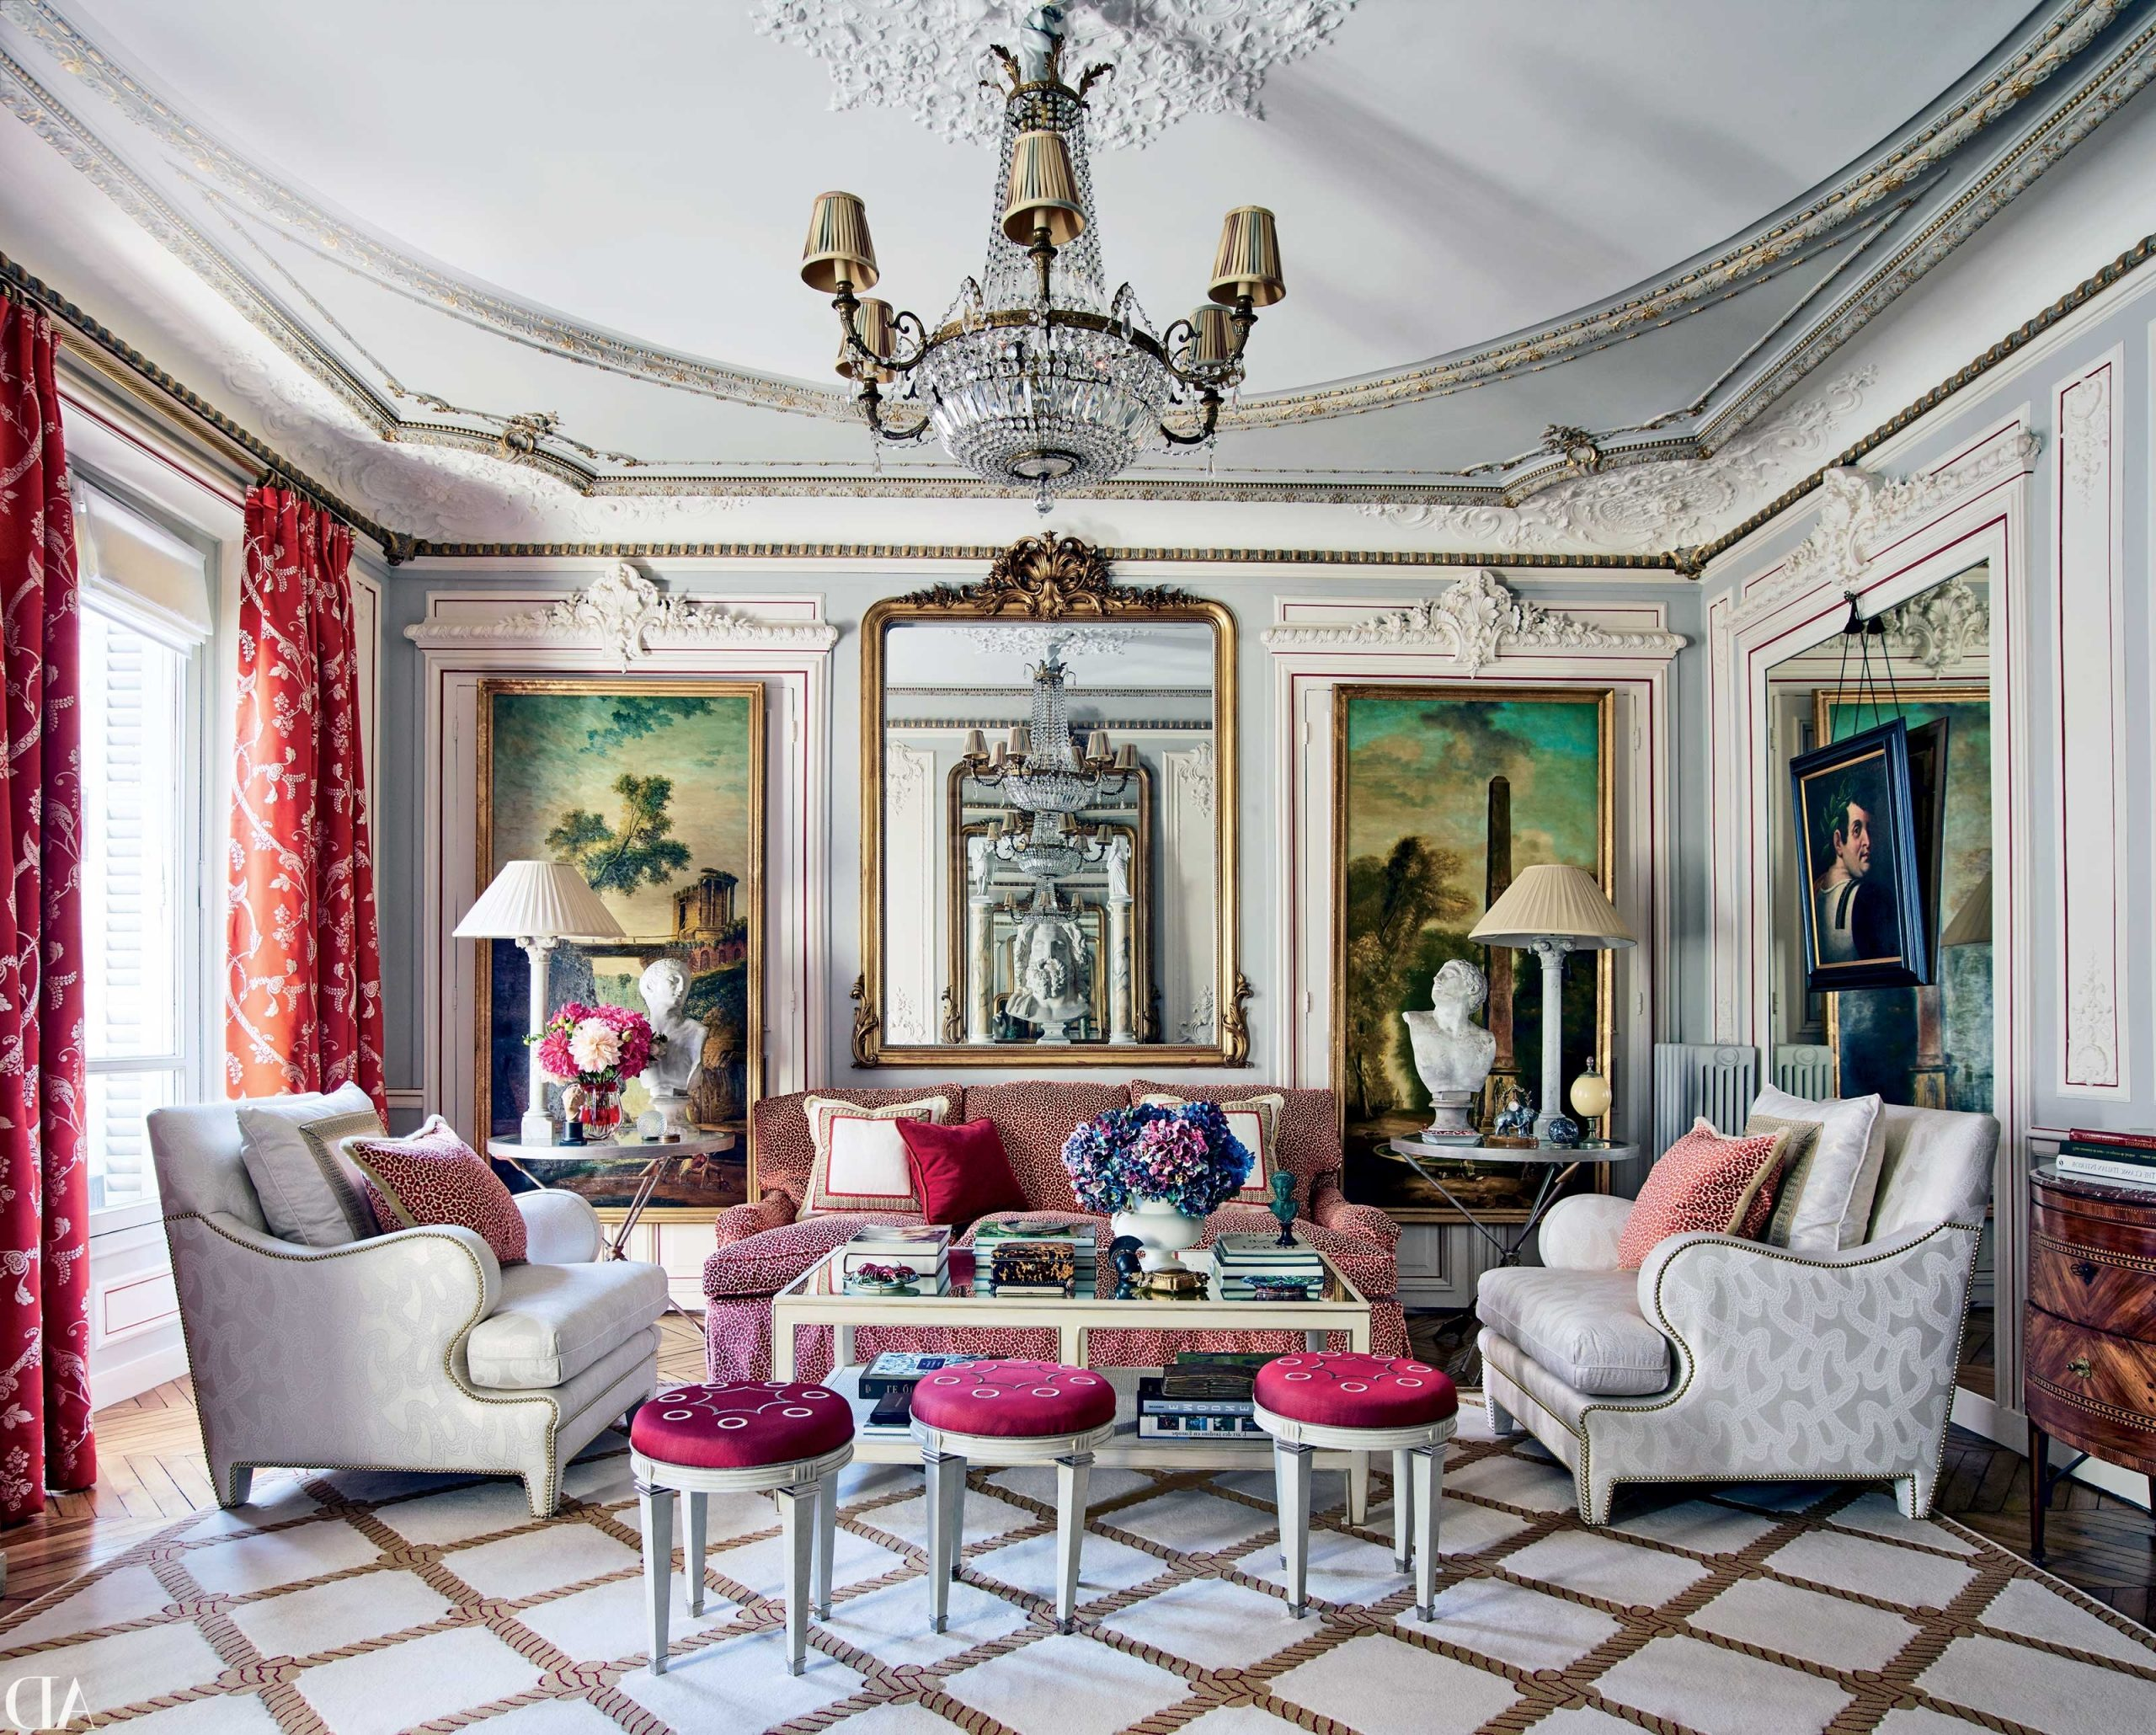 31 Living Room Ideas From The Homes Of Top Designers 10+ Architectural Digest Small Living Room Ideas